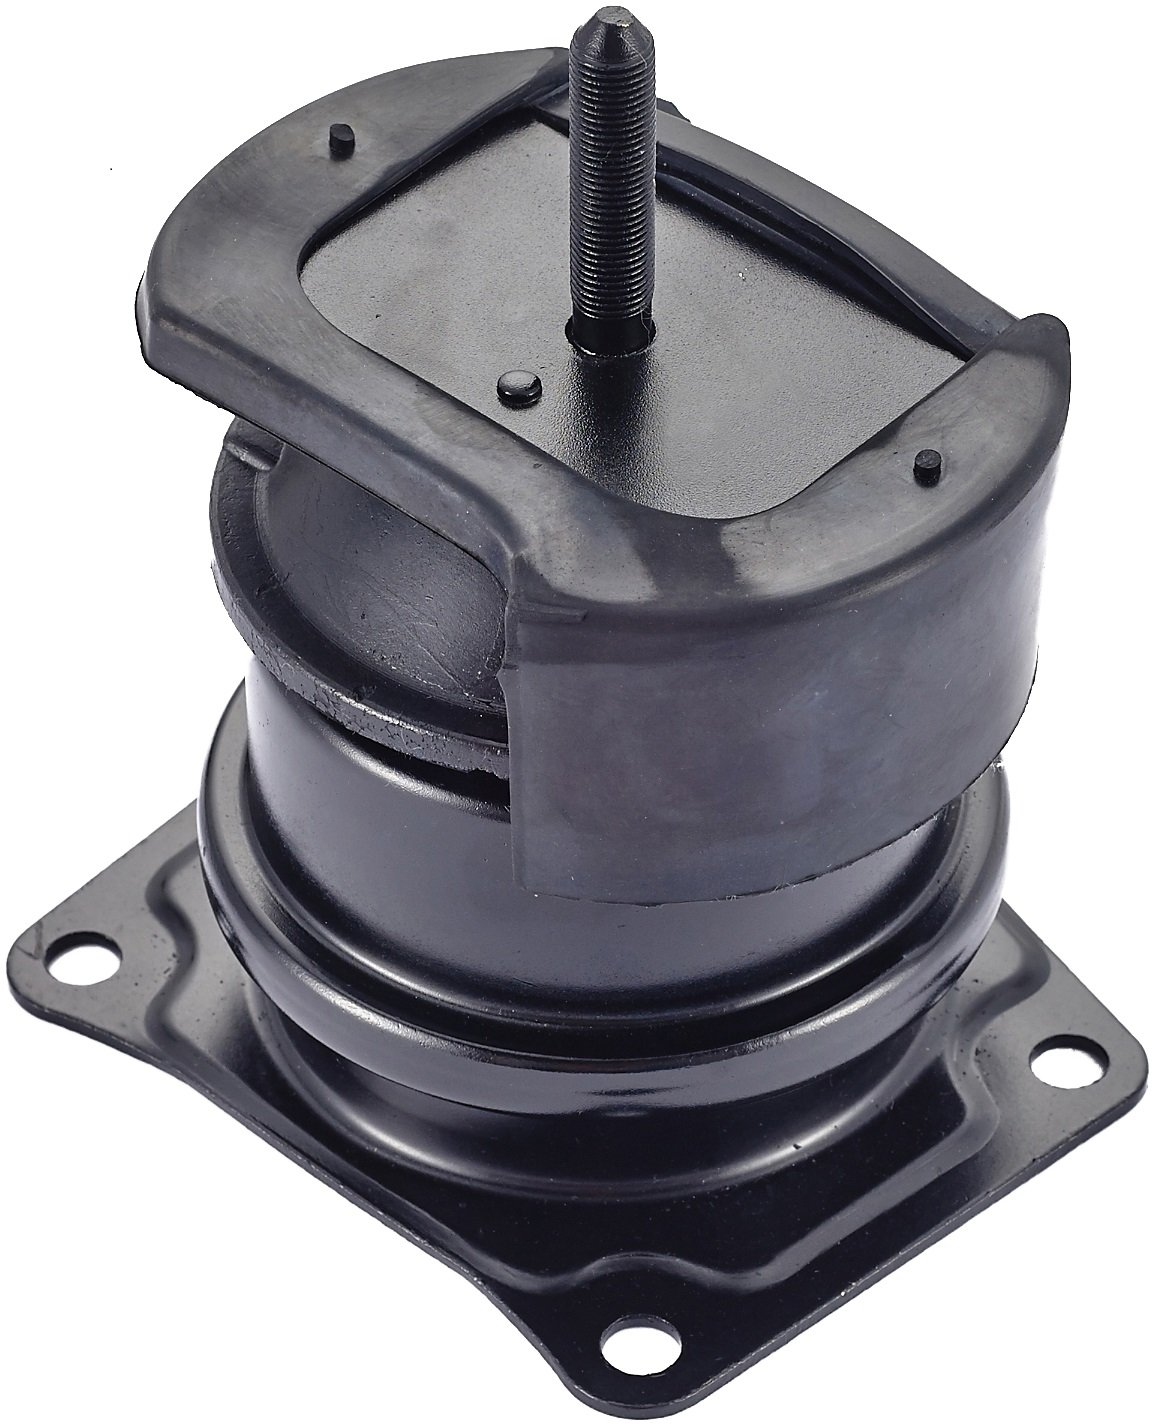 Front Engine Motor Mount for 1998-2002 Honda Accord 3.0L and 1999-2003 Acura TL 3.2L V6 A6592